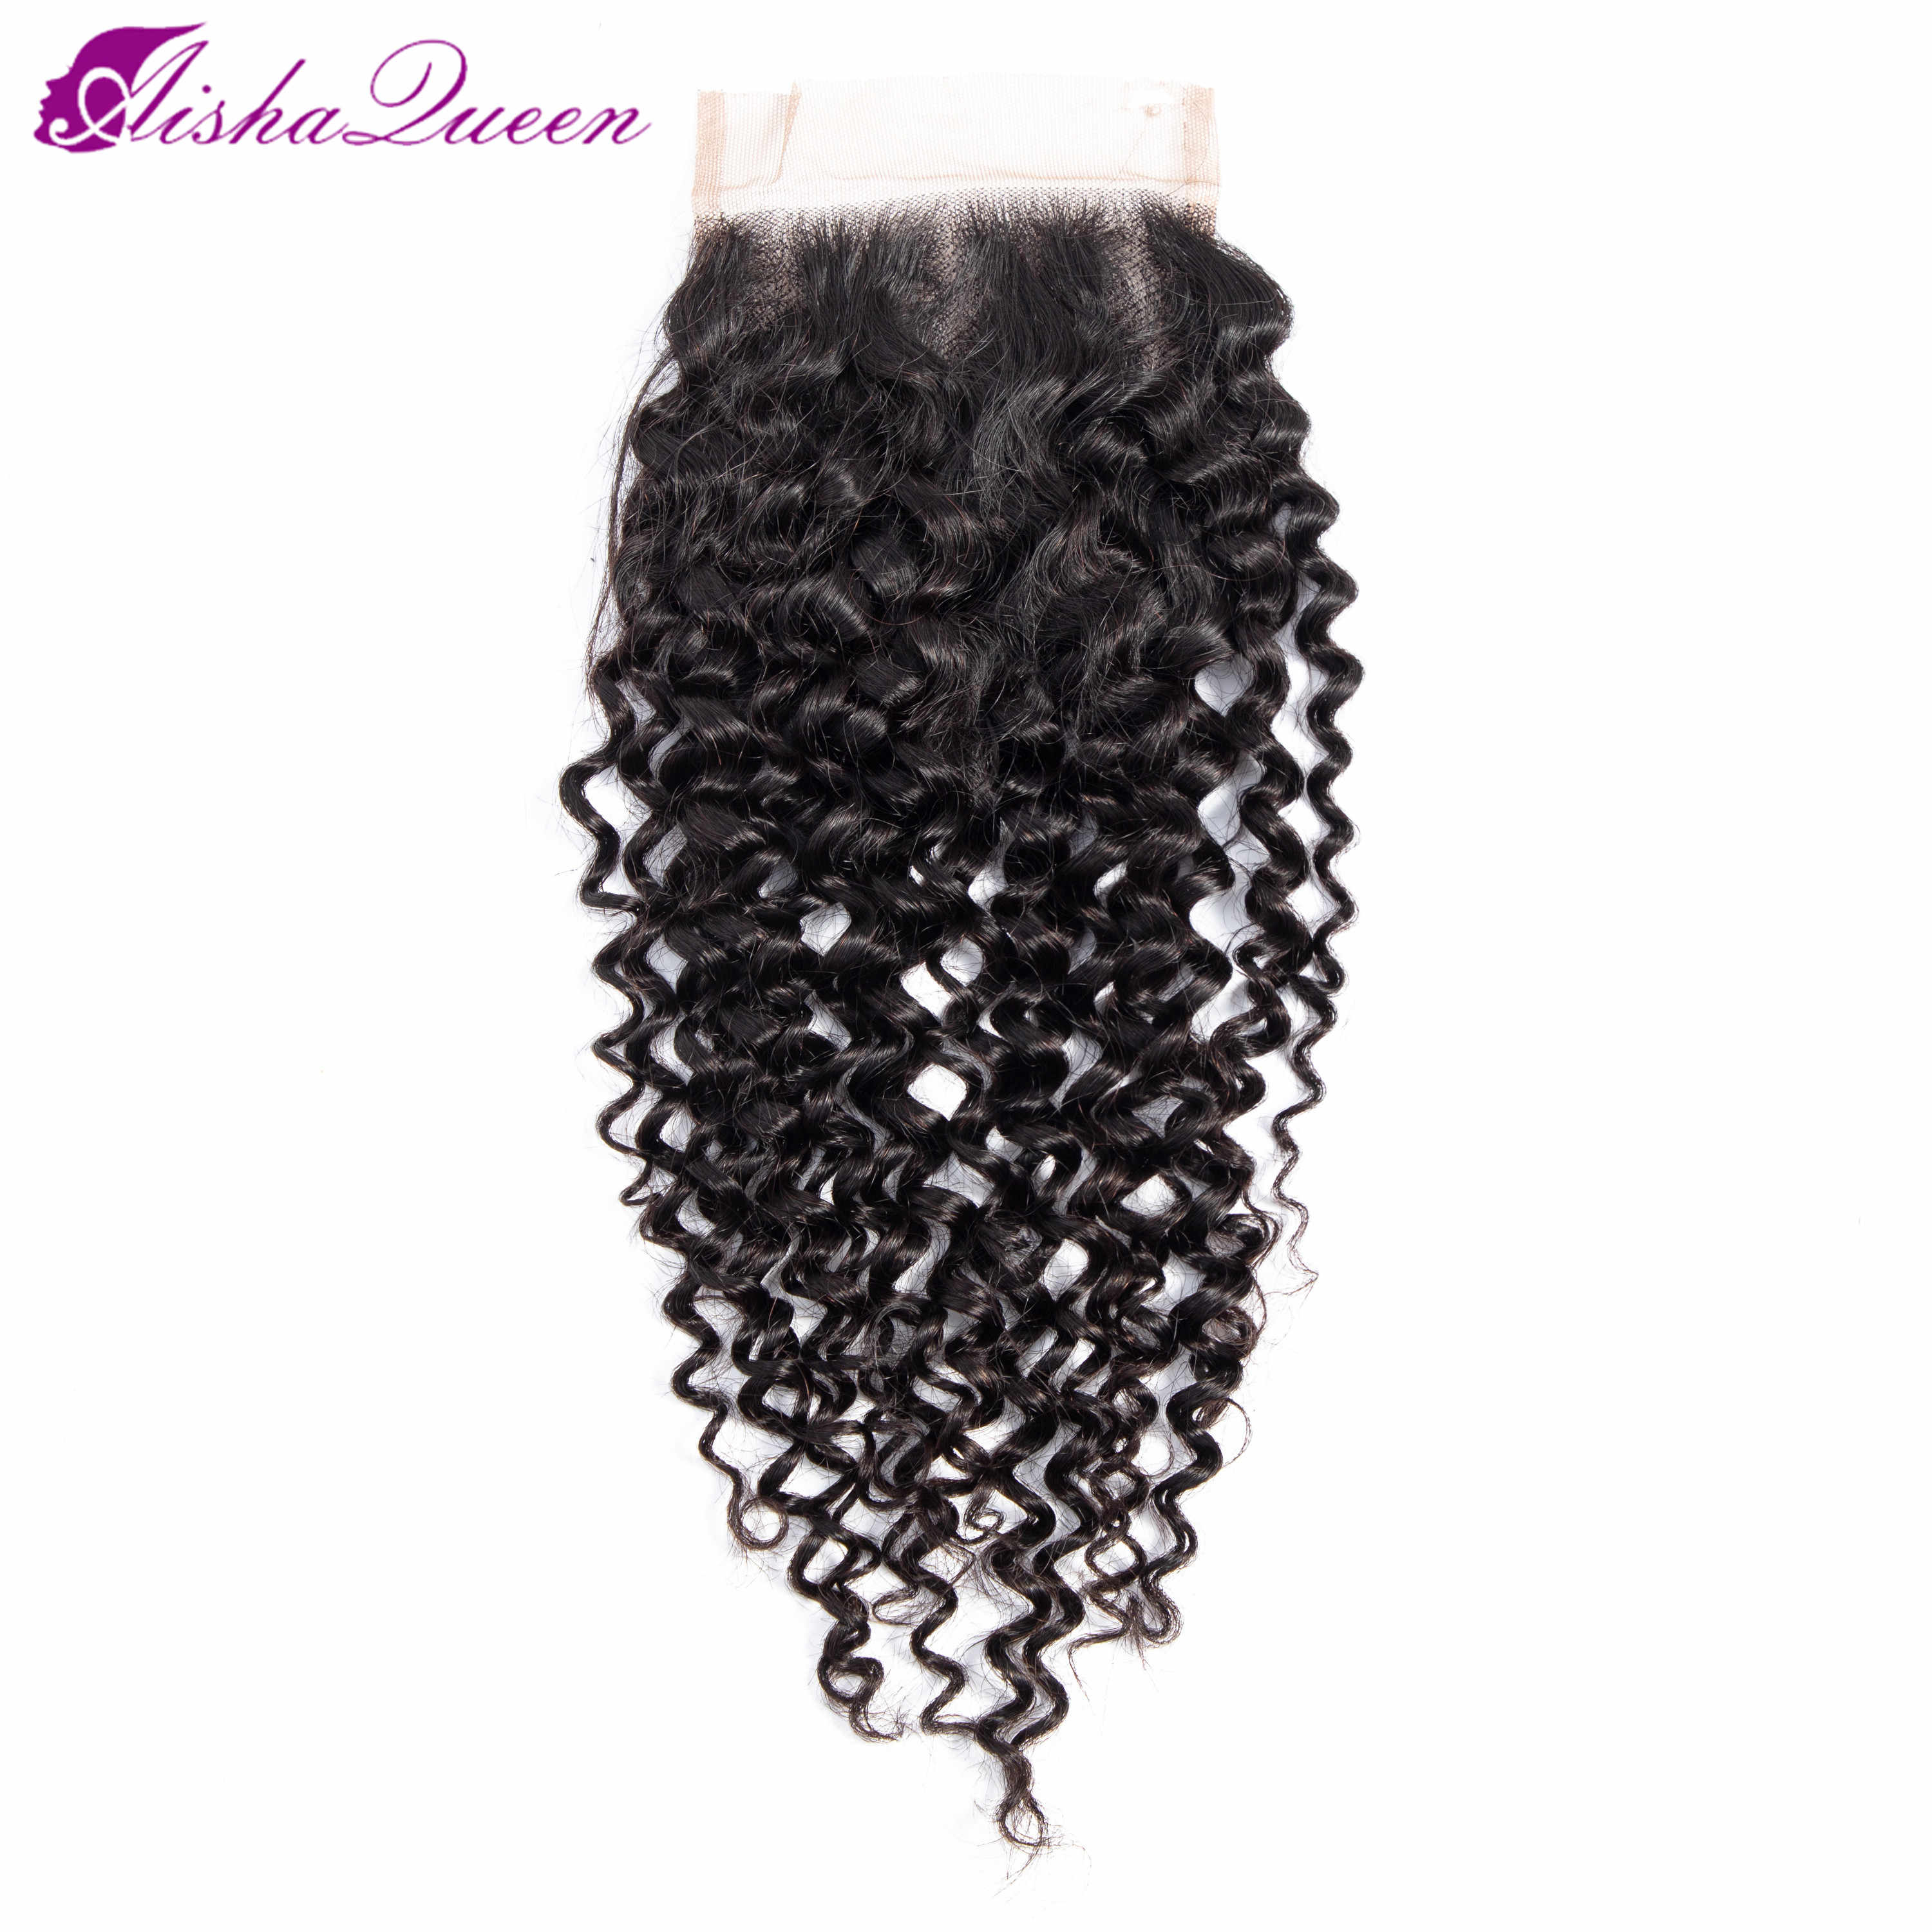 Aisha Queen Kinky Curly Bundles With Closure Human Hair Bundles With Closure Non Remy Brazilian Hair Weave Bundles